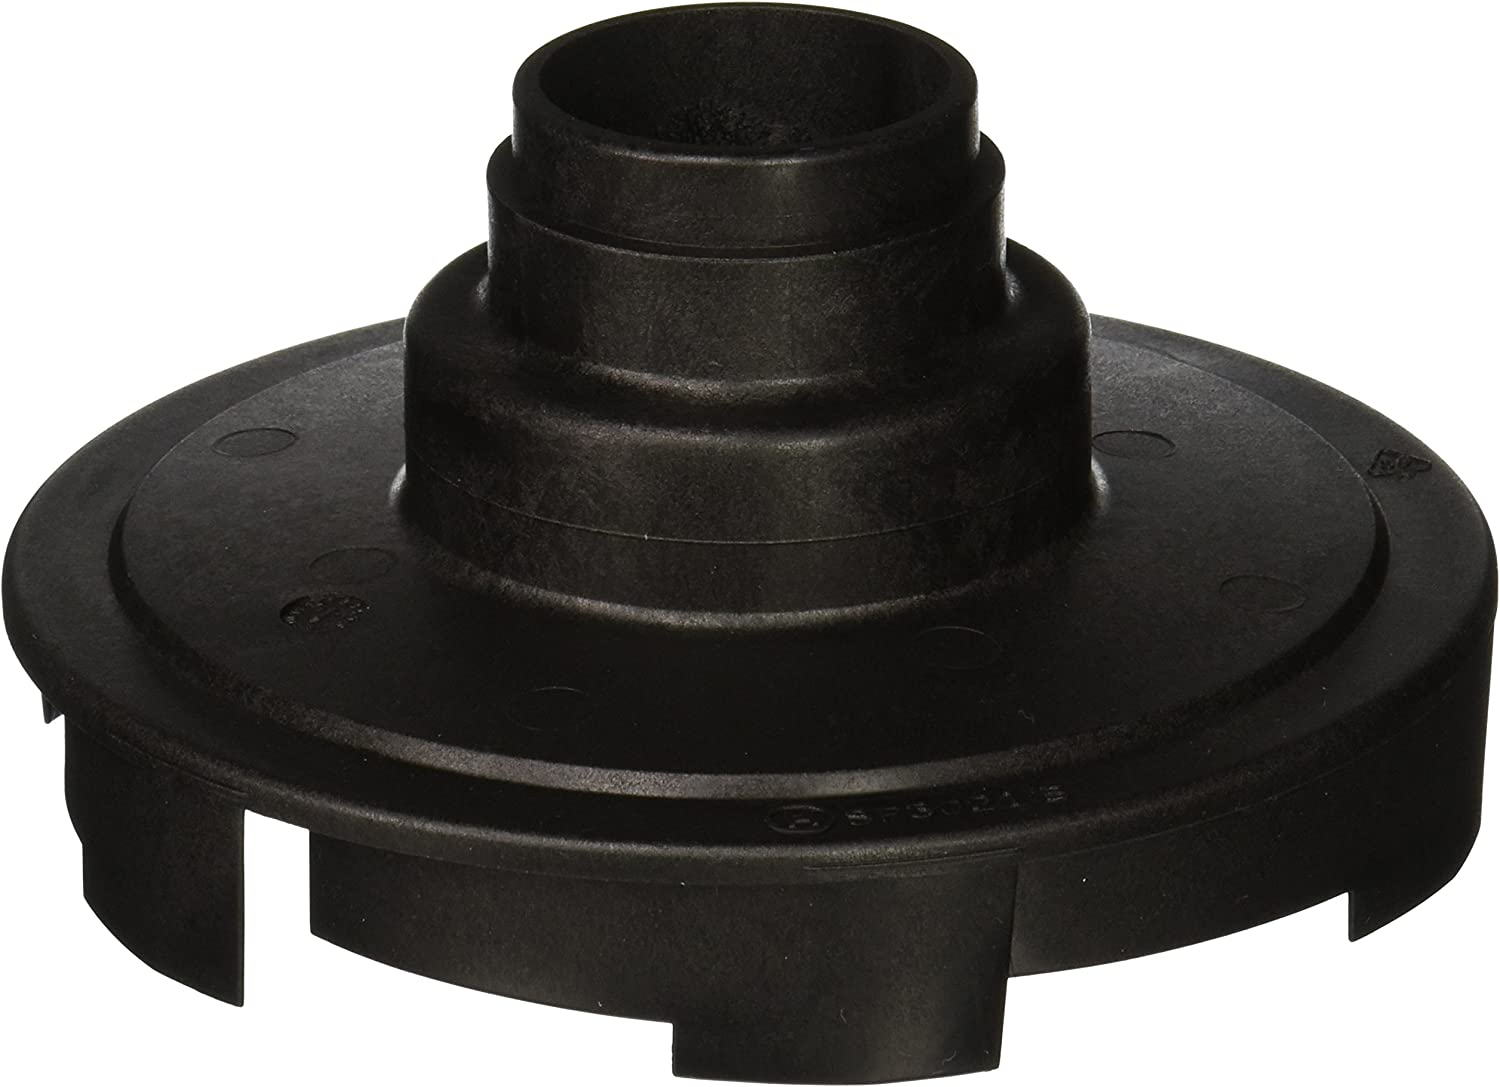 Hayward SPX3021B 2-1/2 and 3-Horsepower Diffuser Replacement for Hayward Super Ii Pump